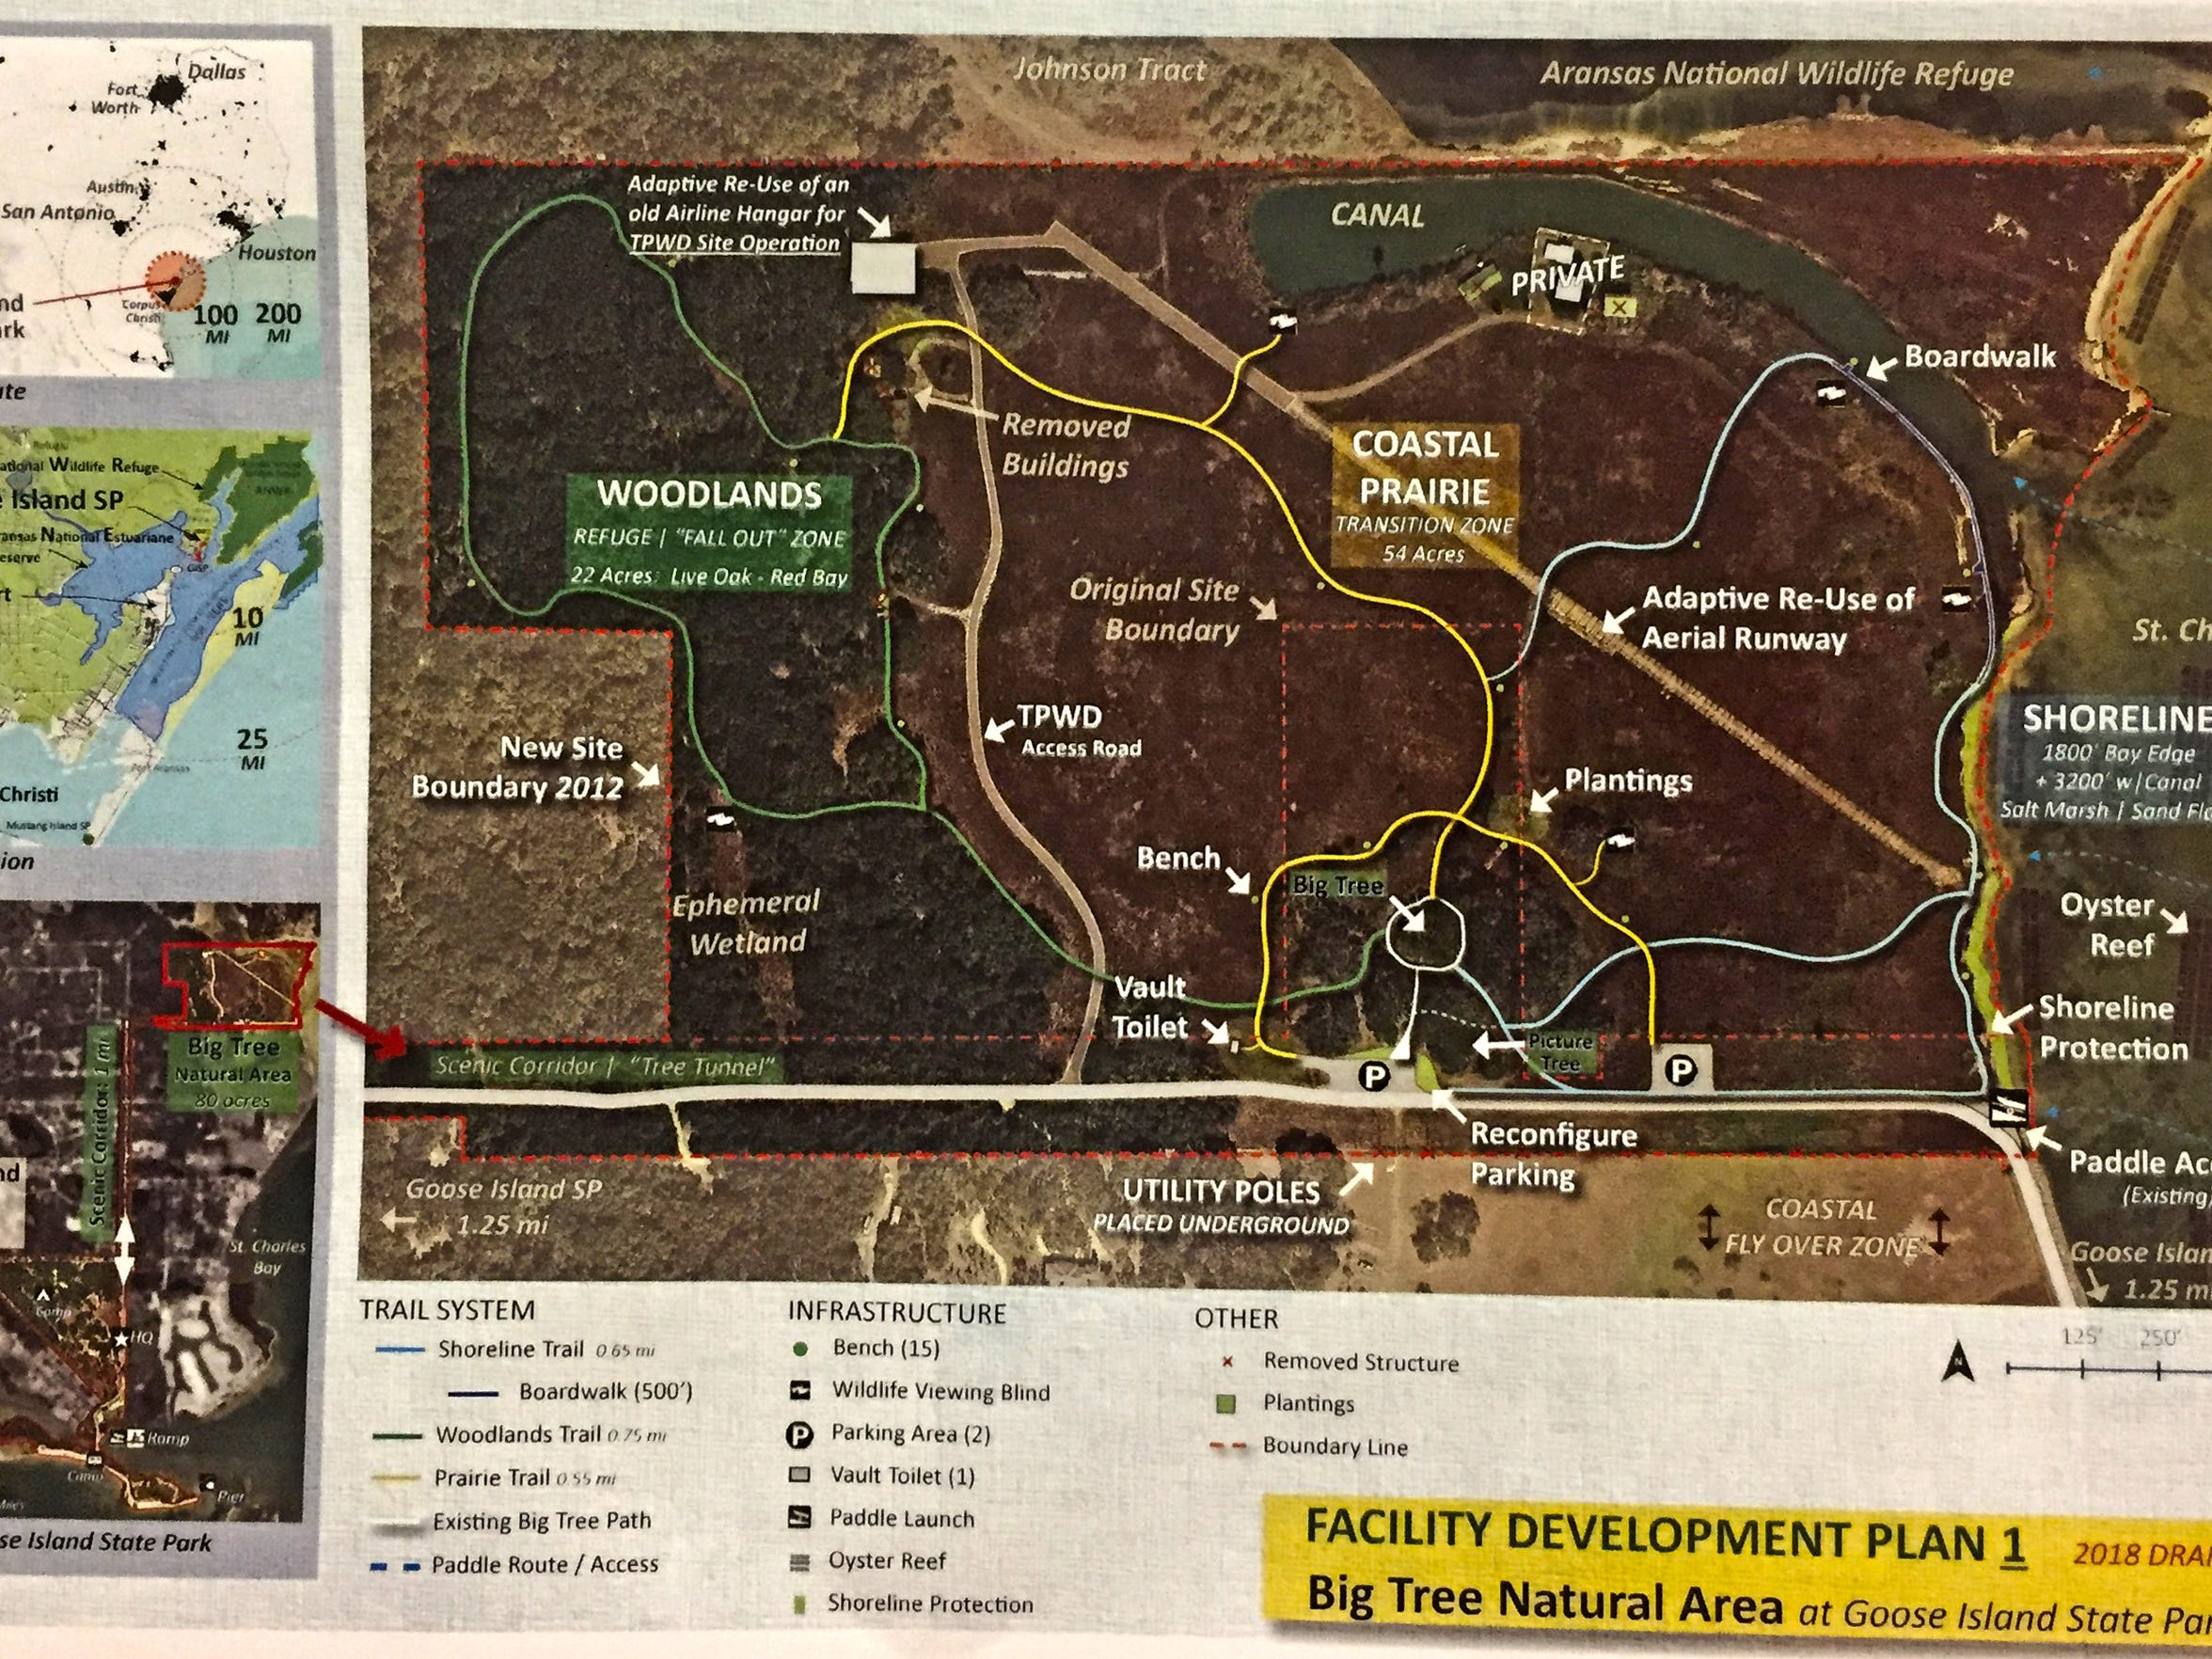 This is a revised plan of proposed developments on the Big Tree property, but this is not the final plan.